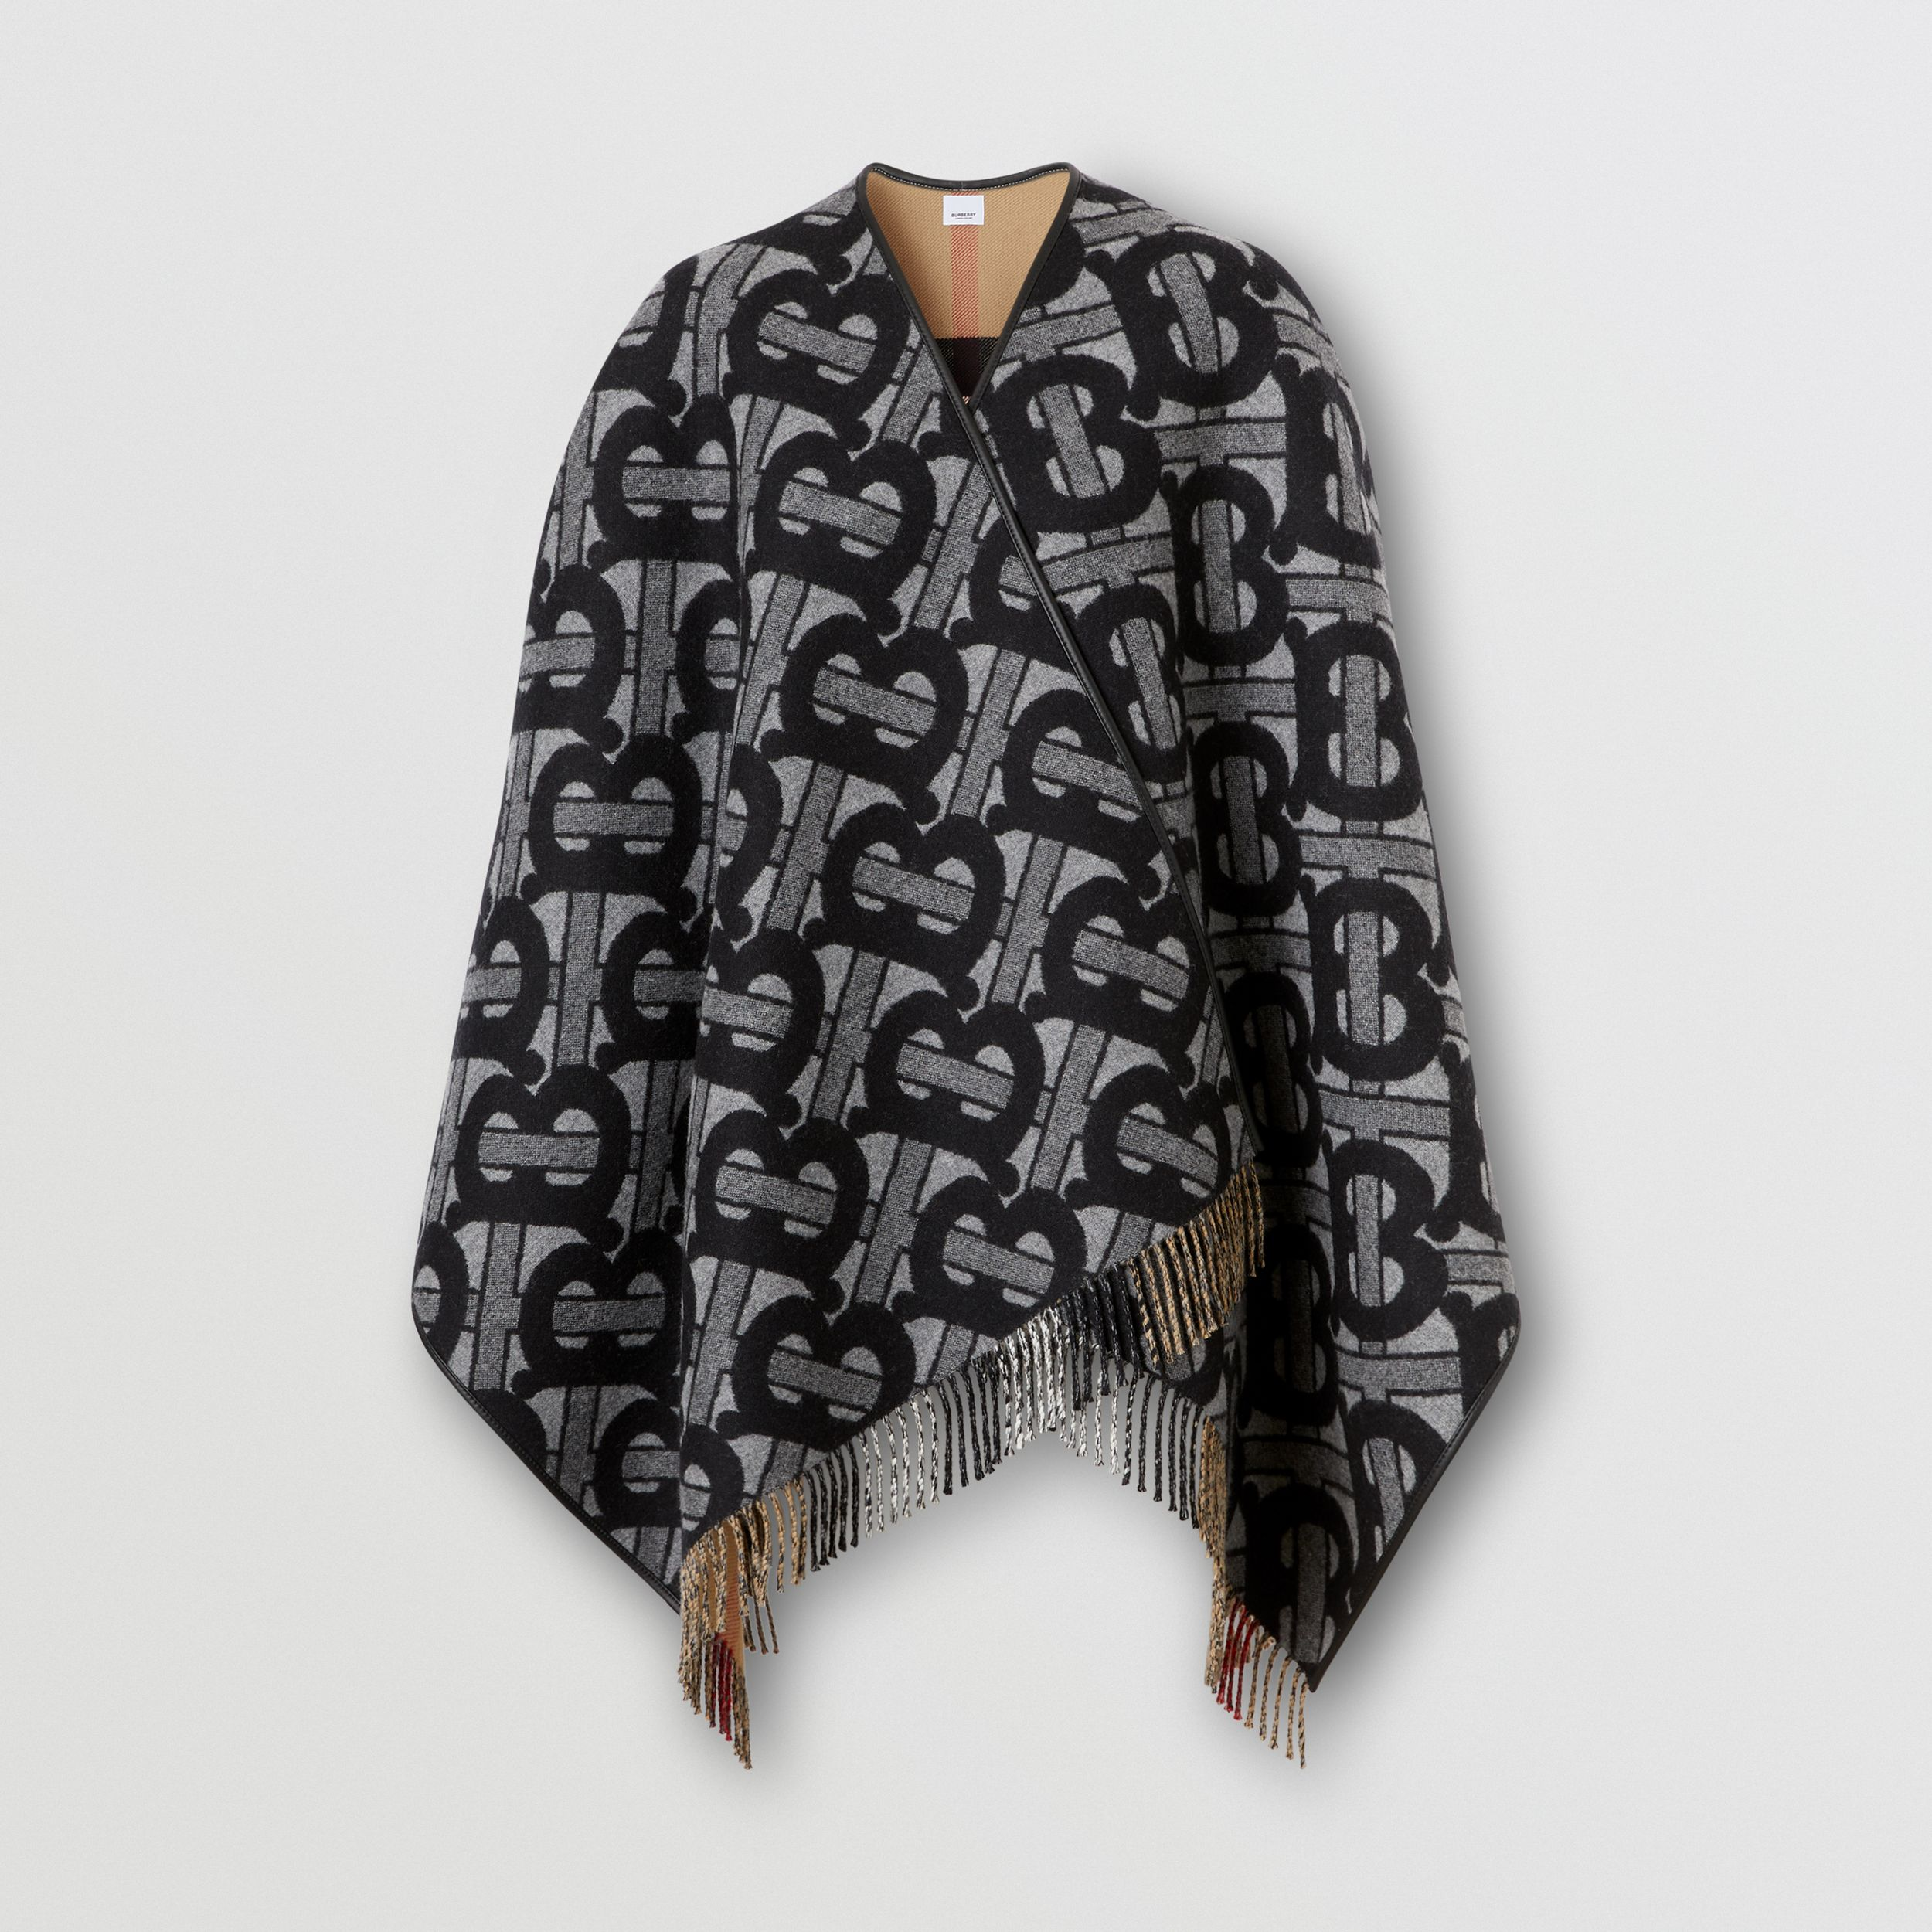 Monogram Merino Wool Cashmere Jacquard Cape in Graphite - Women | Burberry - 4